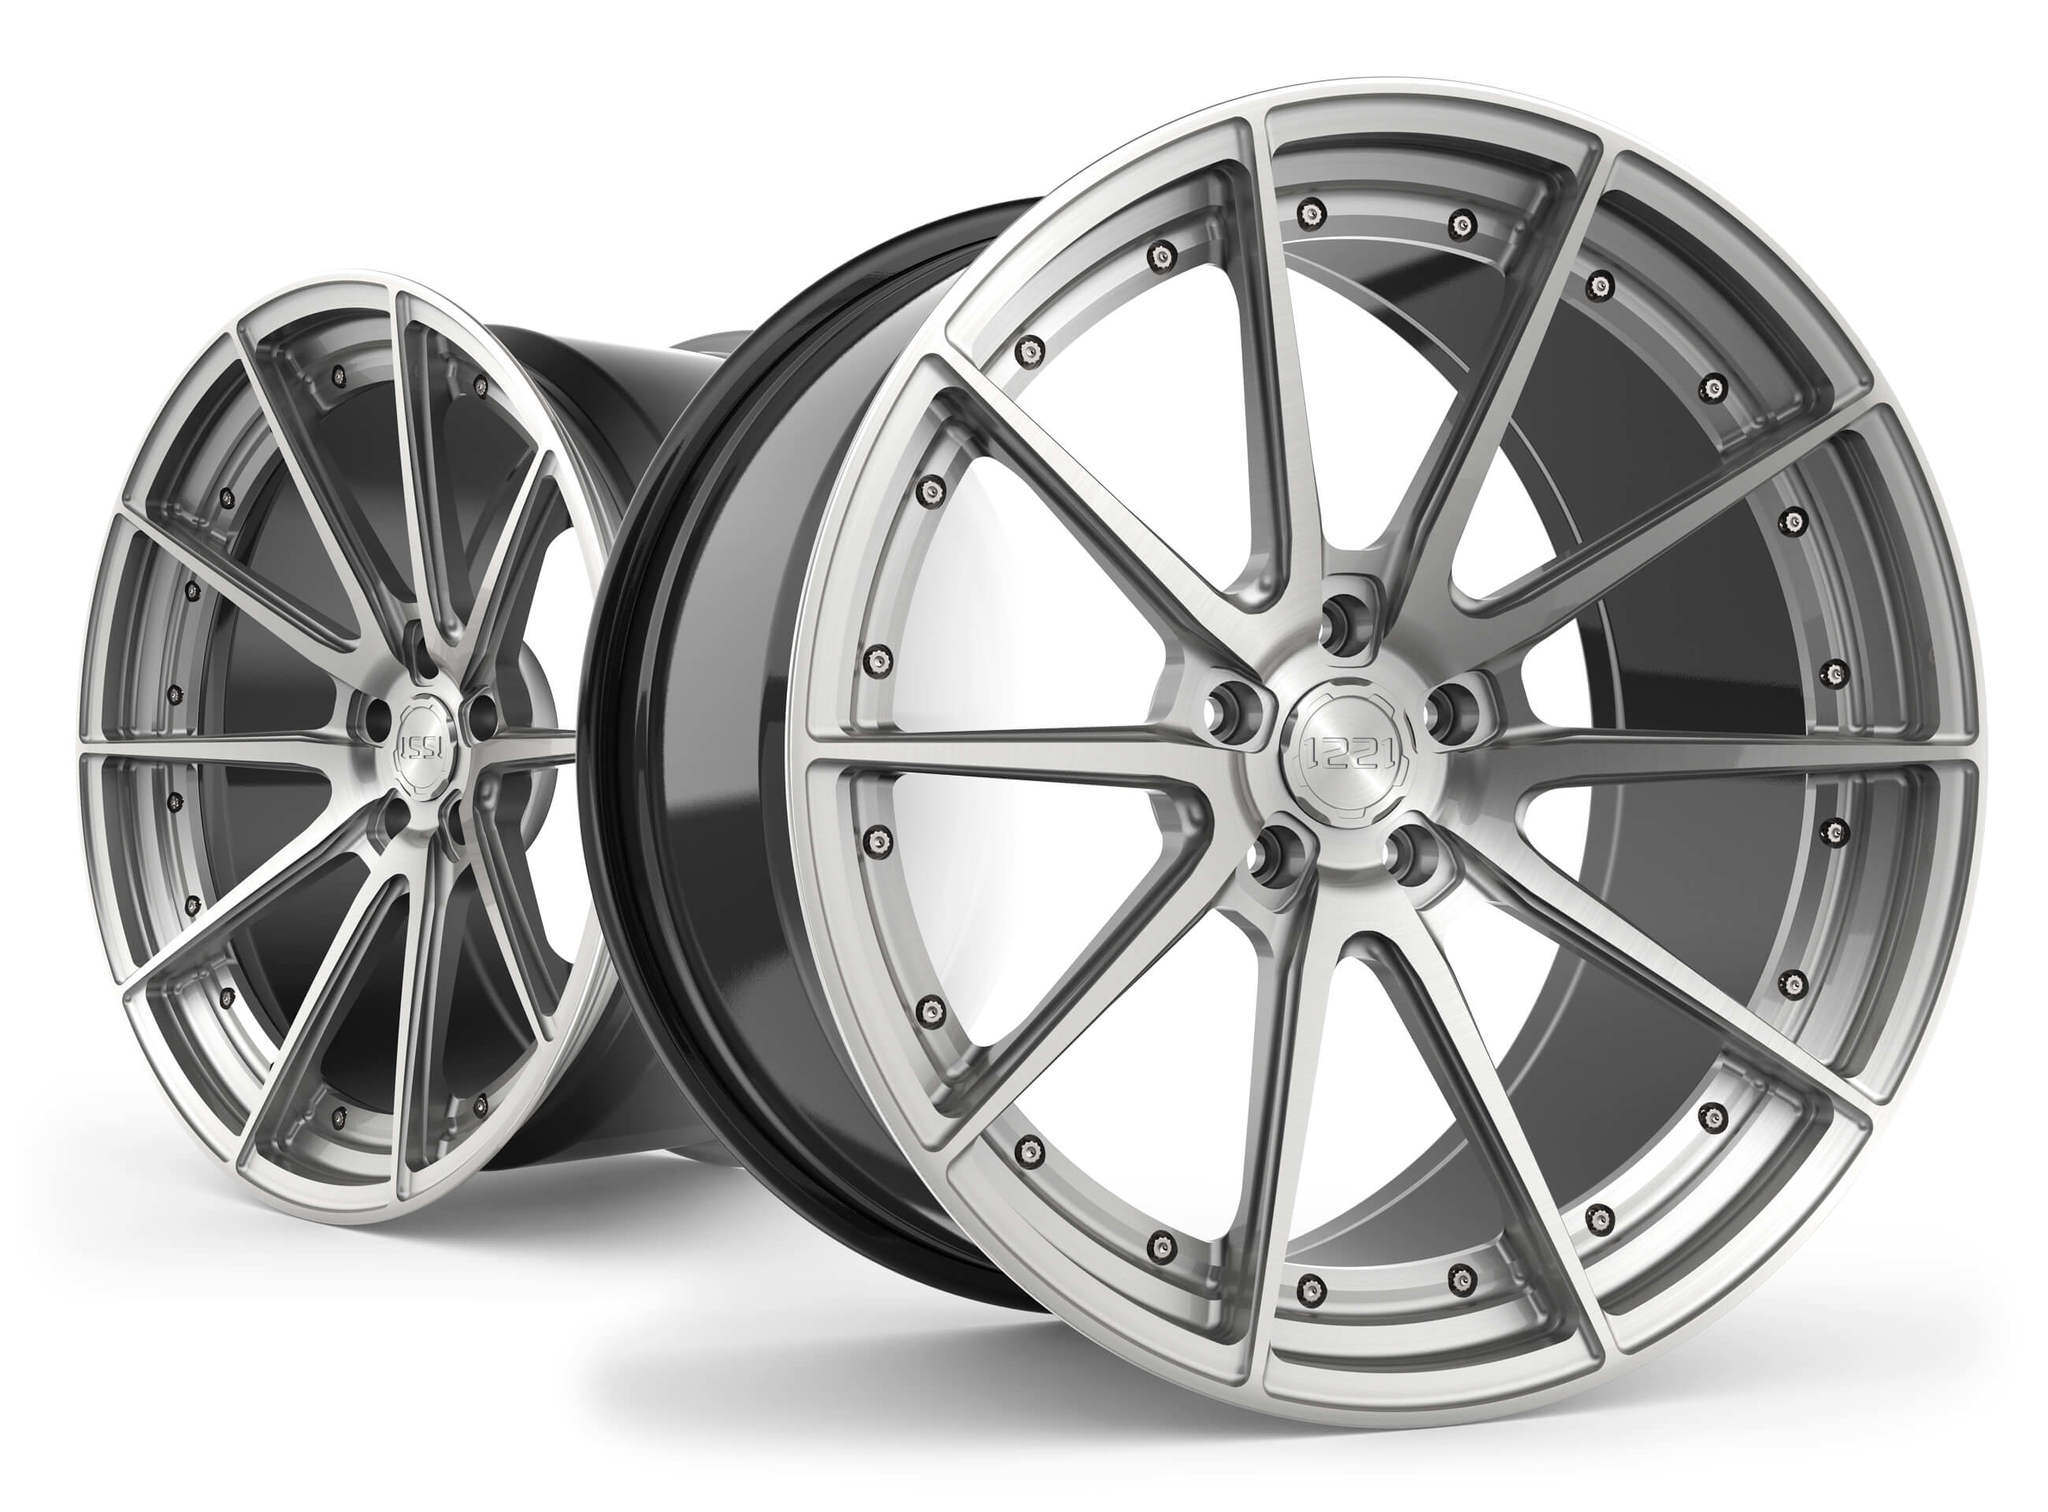 1221 Wheels 0110 AP2 SPORT3.0